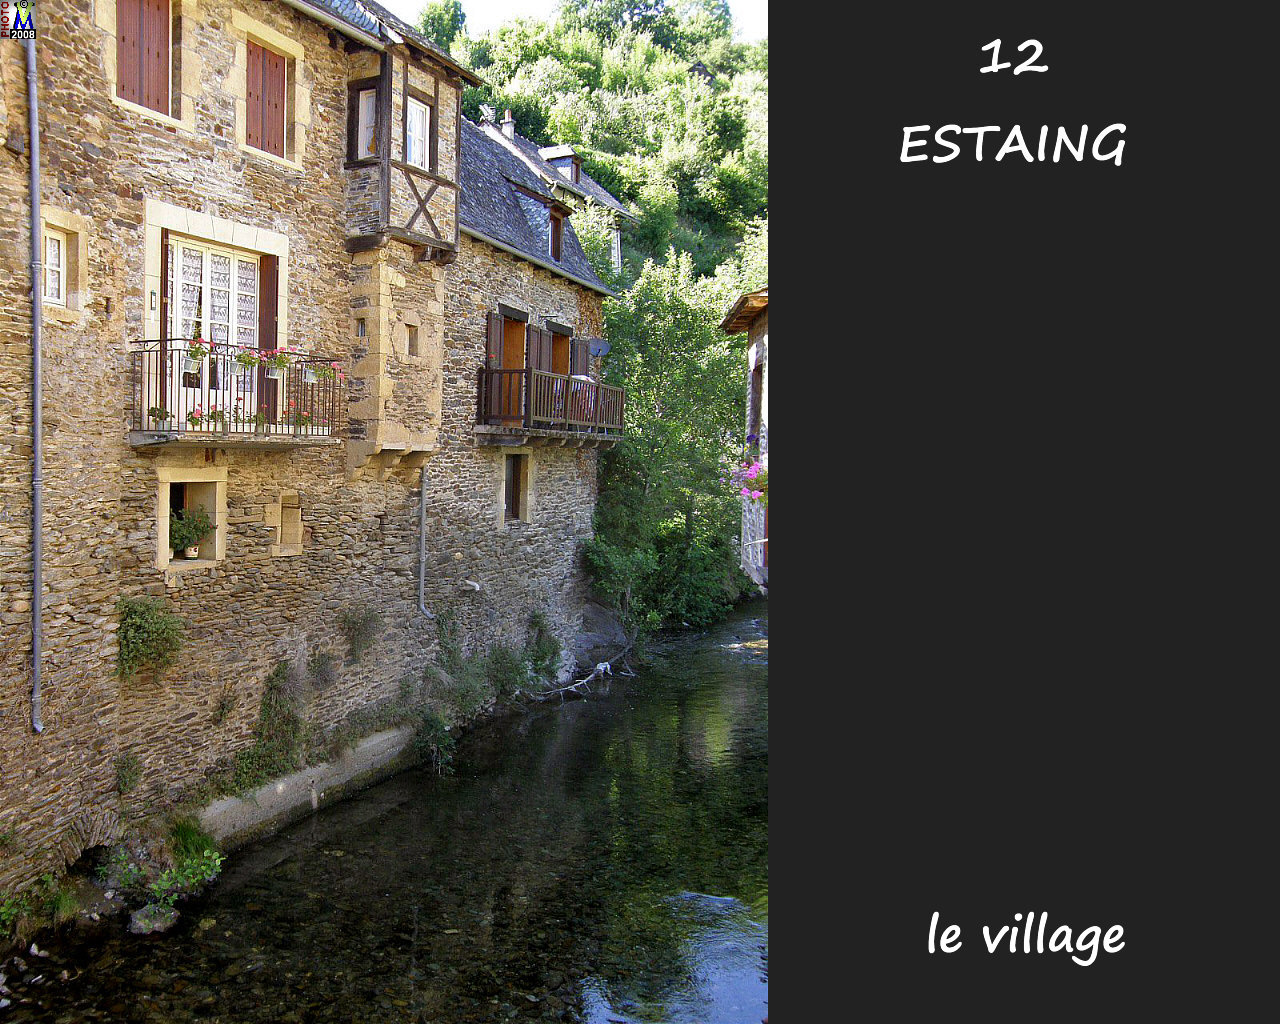 12ESTAING_village_146.jpg